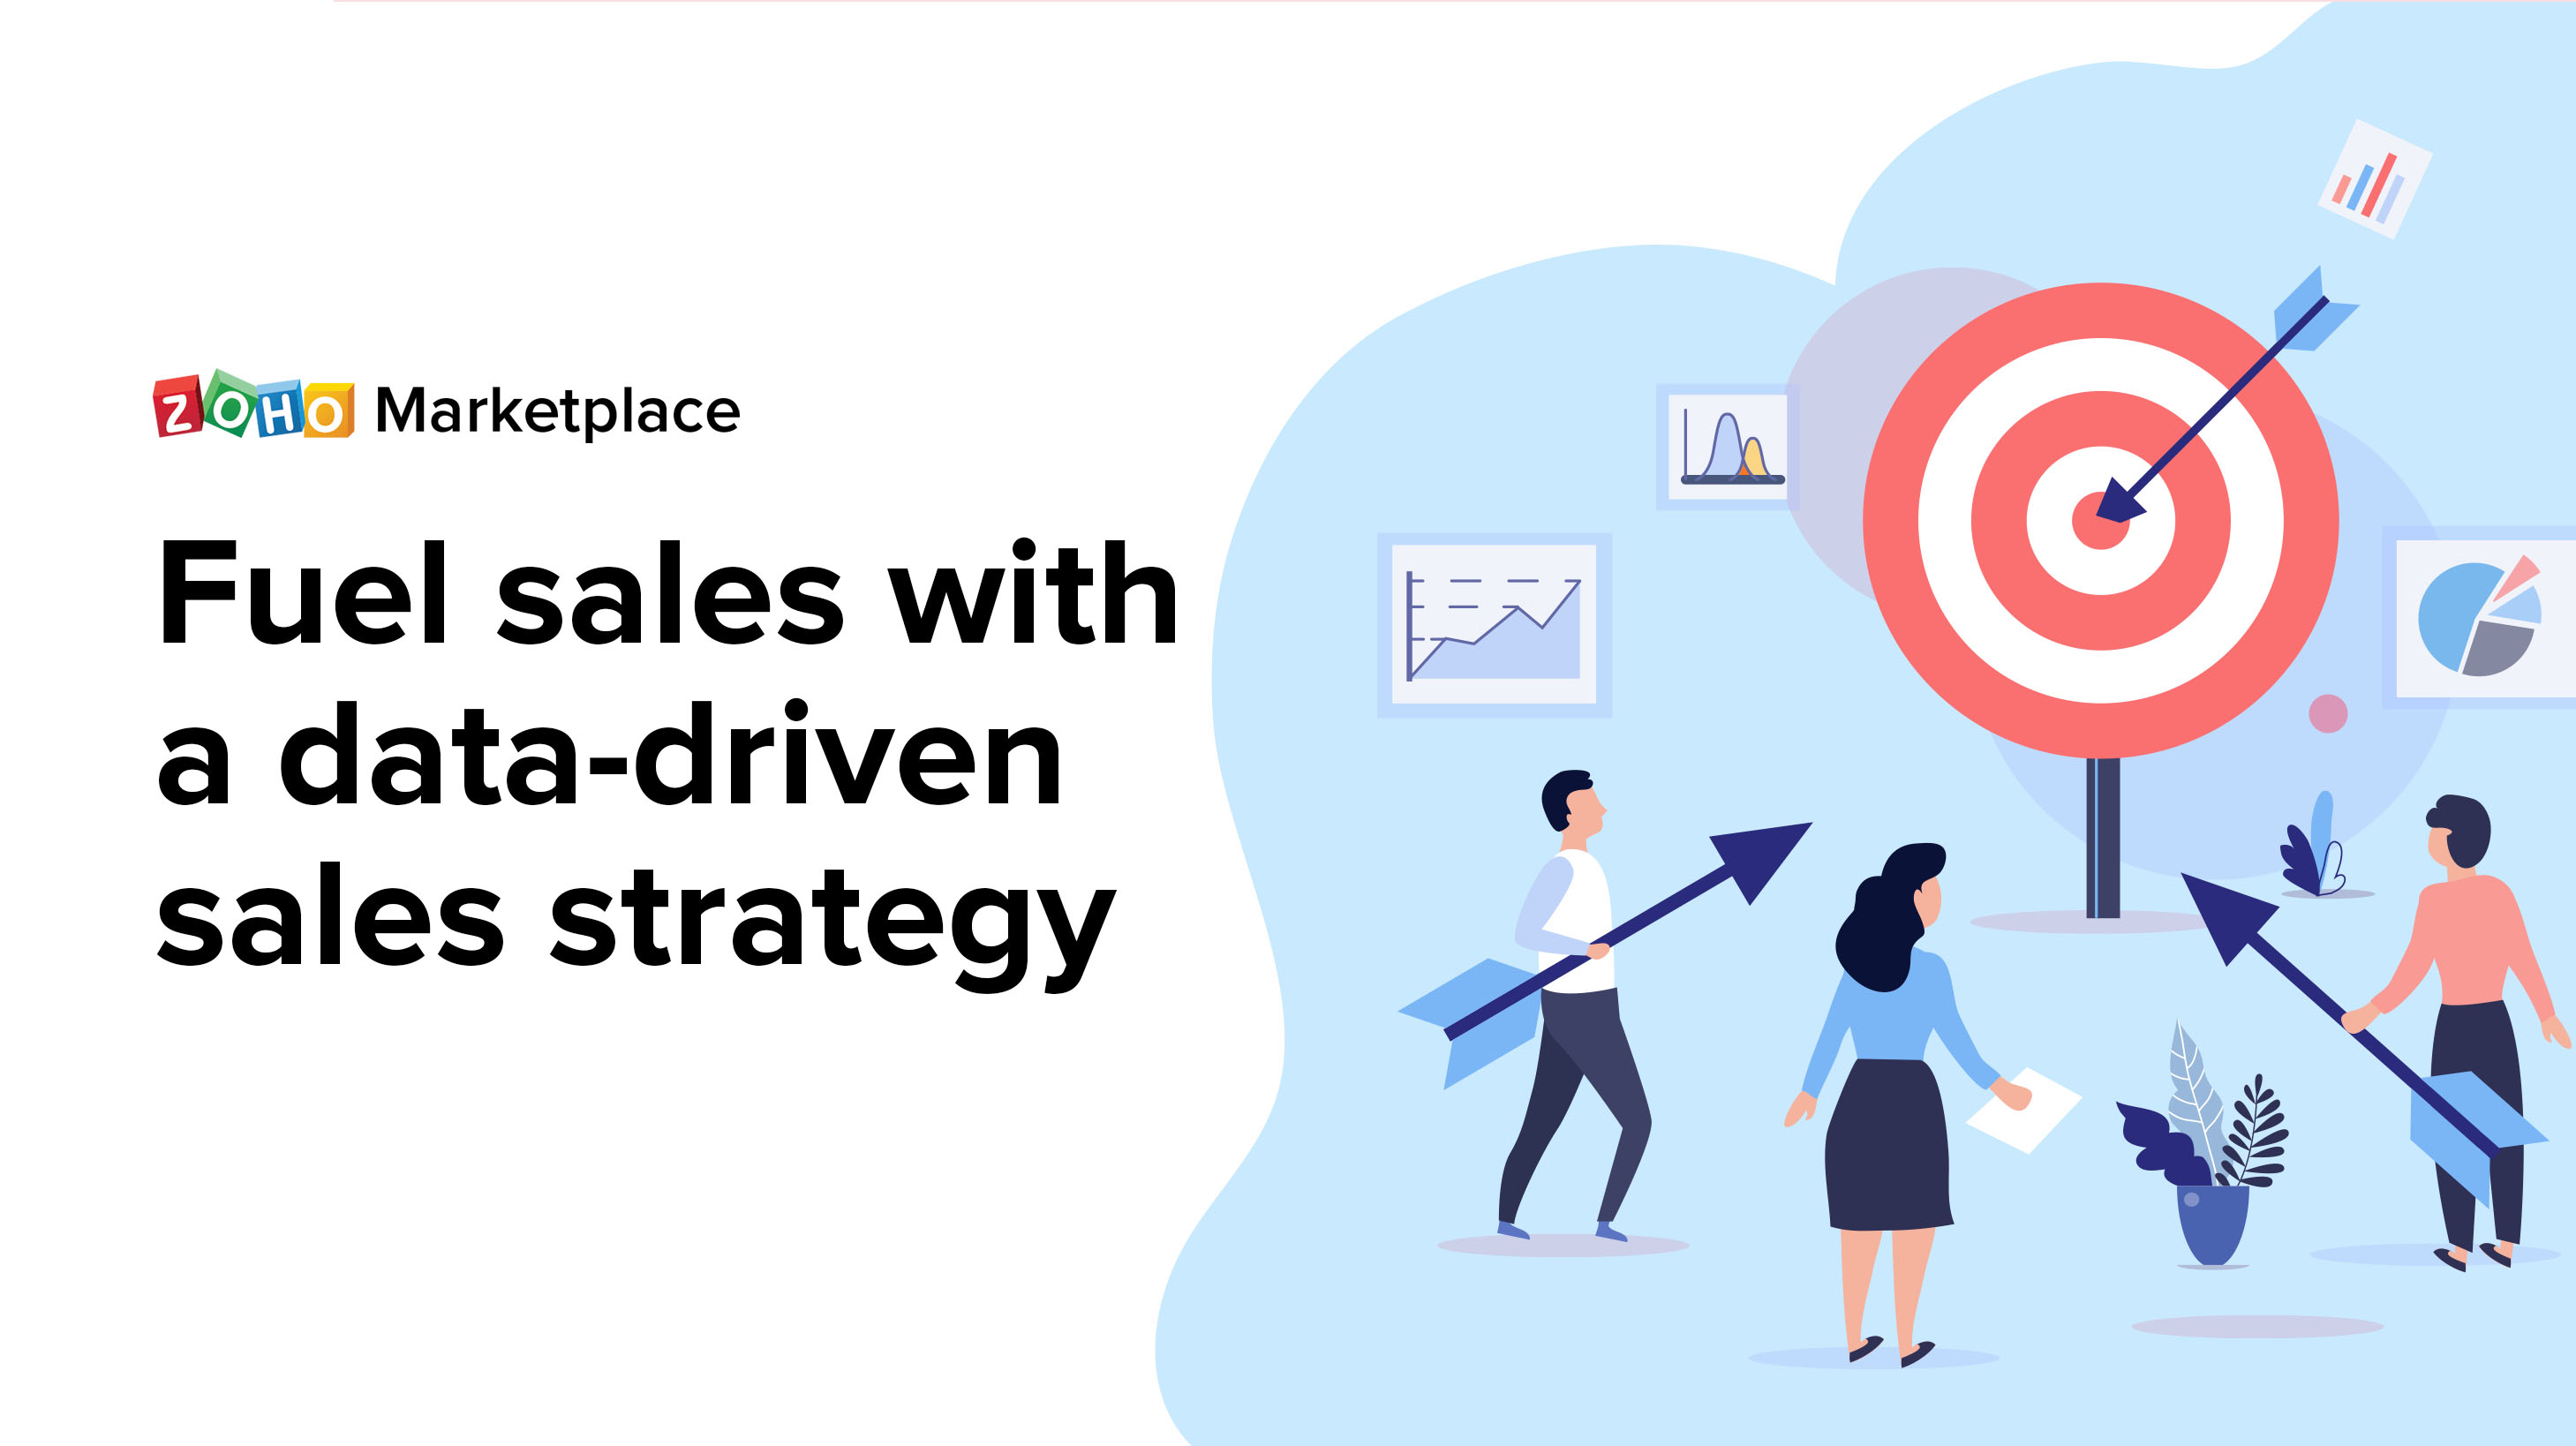 Fuel sales with a data-driven sales strategy